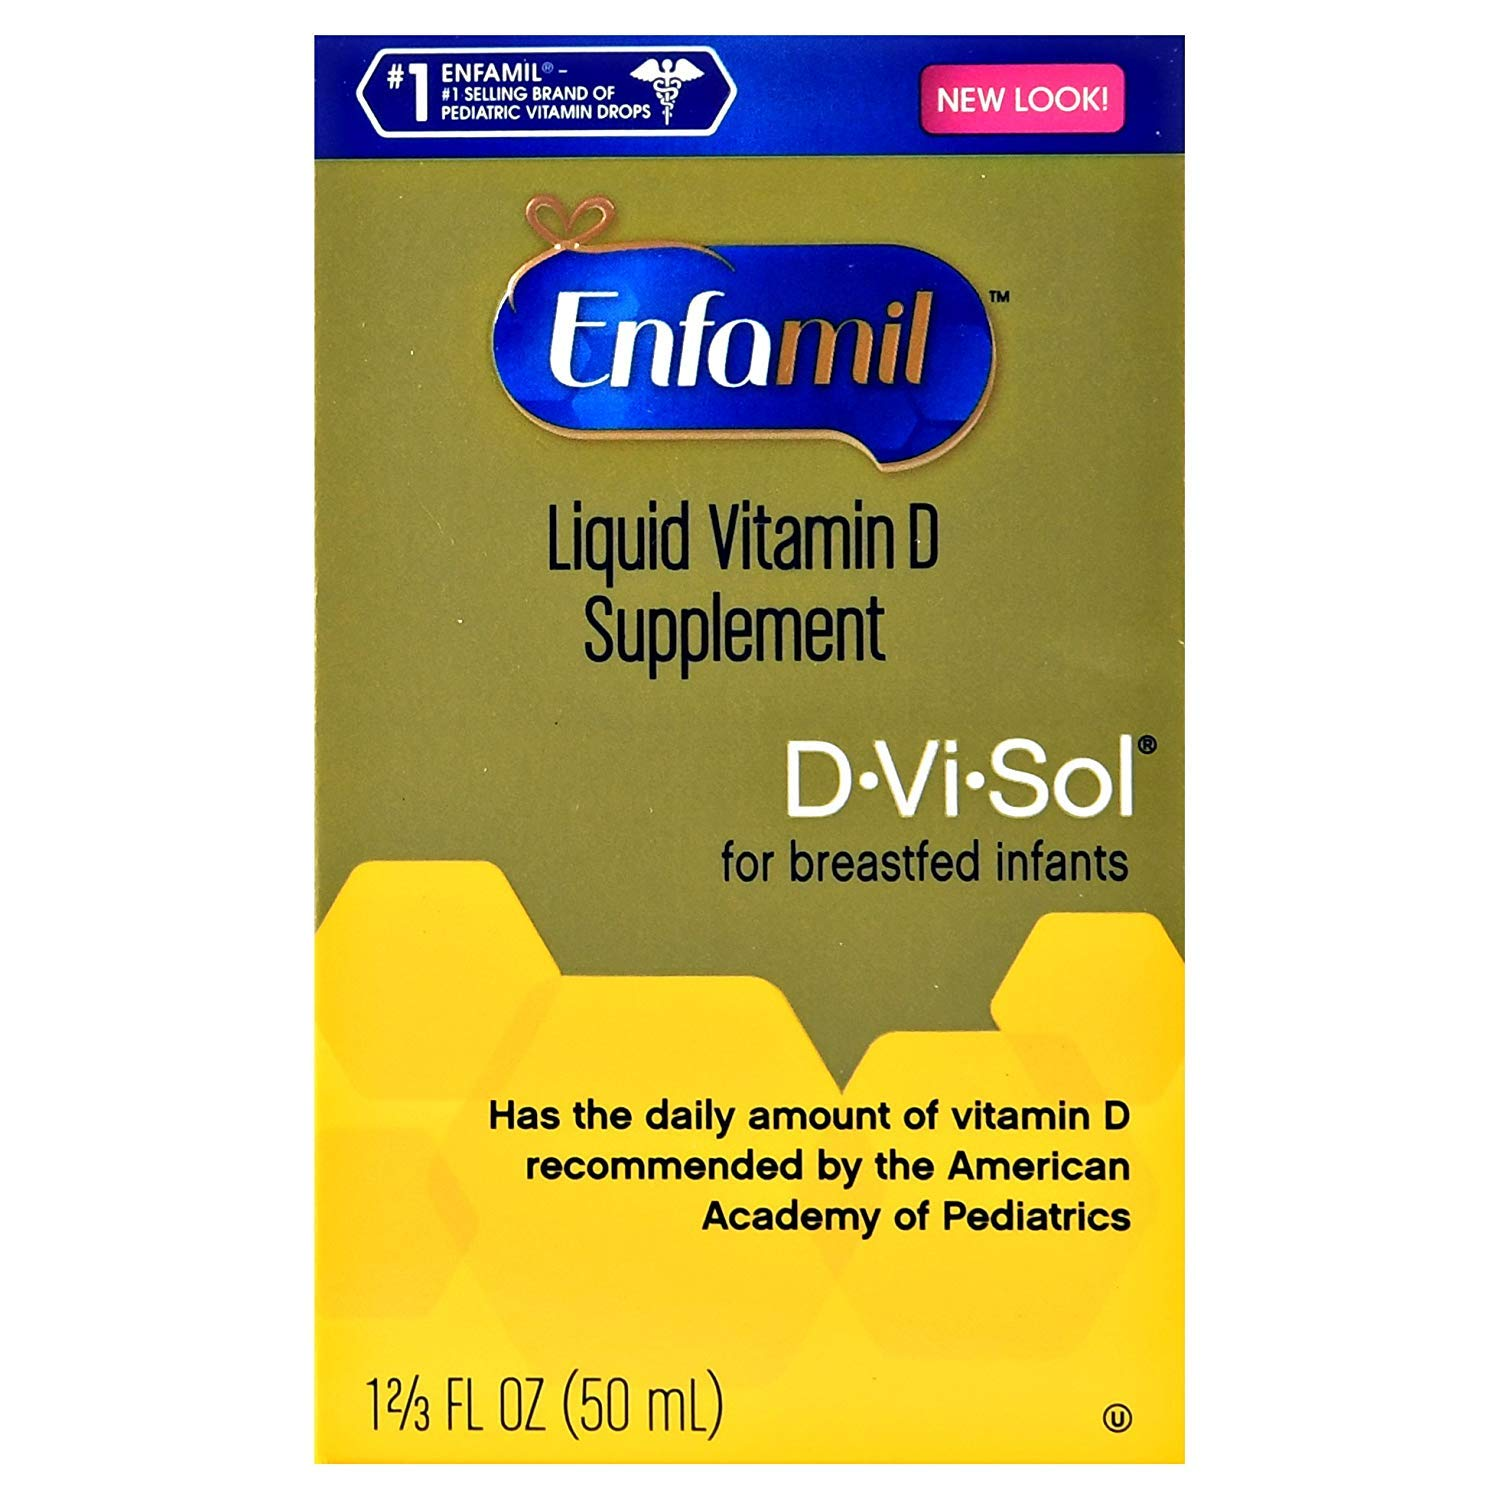 Enfamil D-vi-sol, Vitamin D 50 ml (Pack of 2) Carrier to shipping international usps, ups, fedex, dhl, 14-28 Day By Dragon Shopping